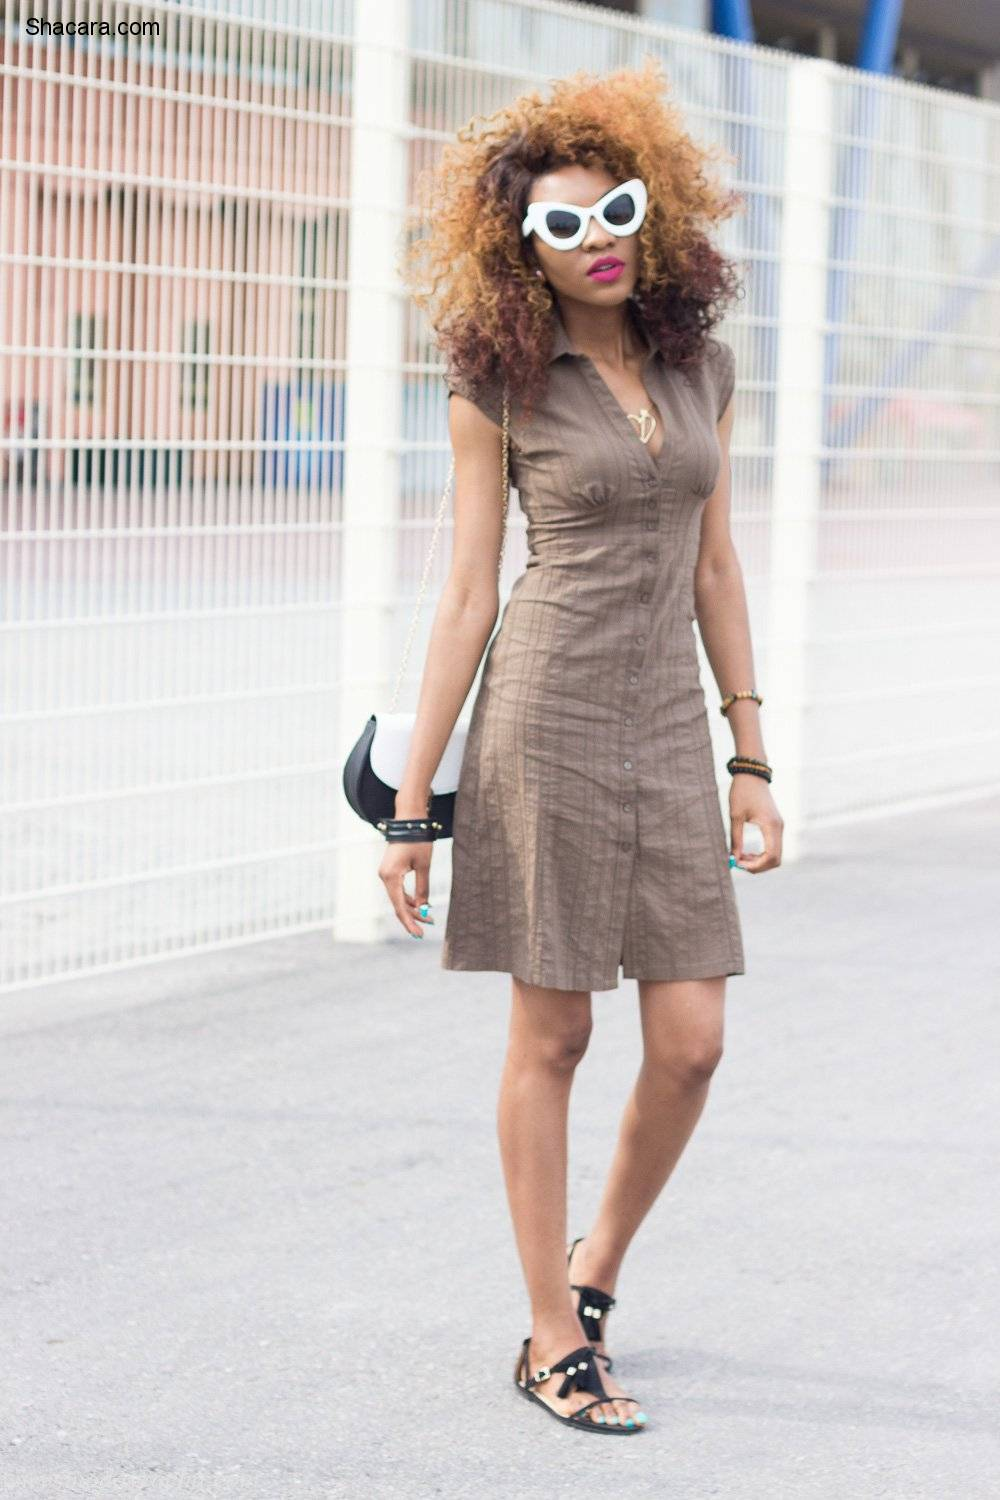 7 OUTFITS LAGOS GIRLS LOVE